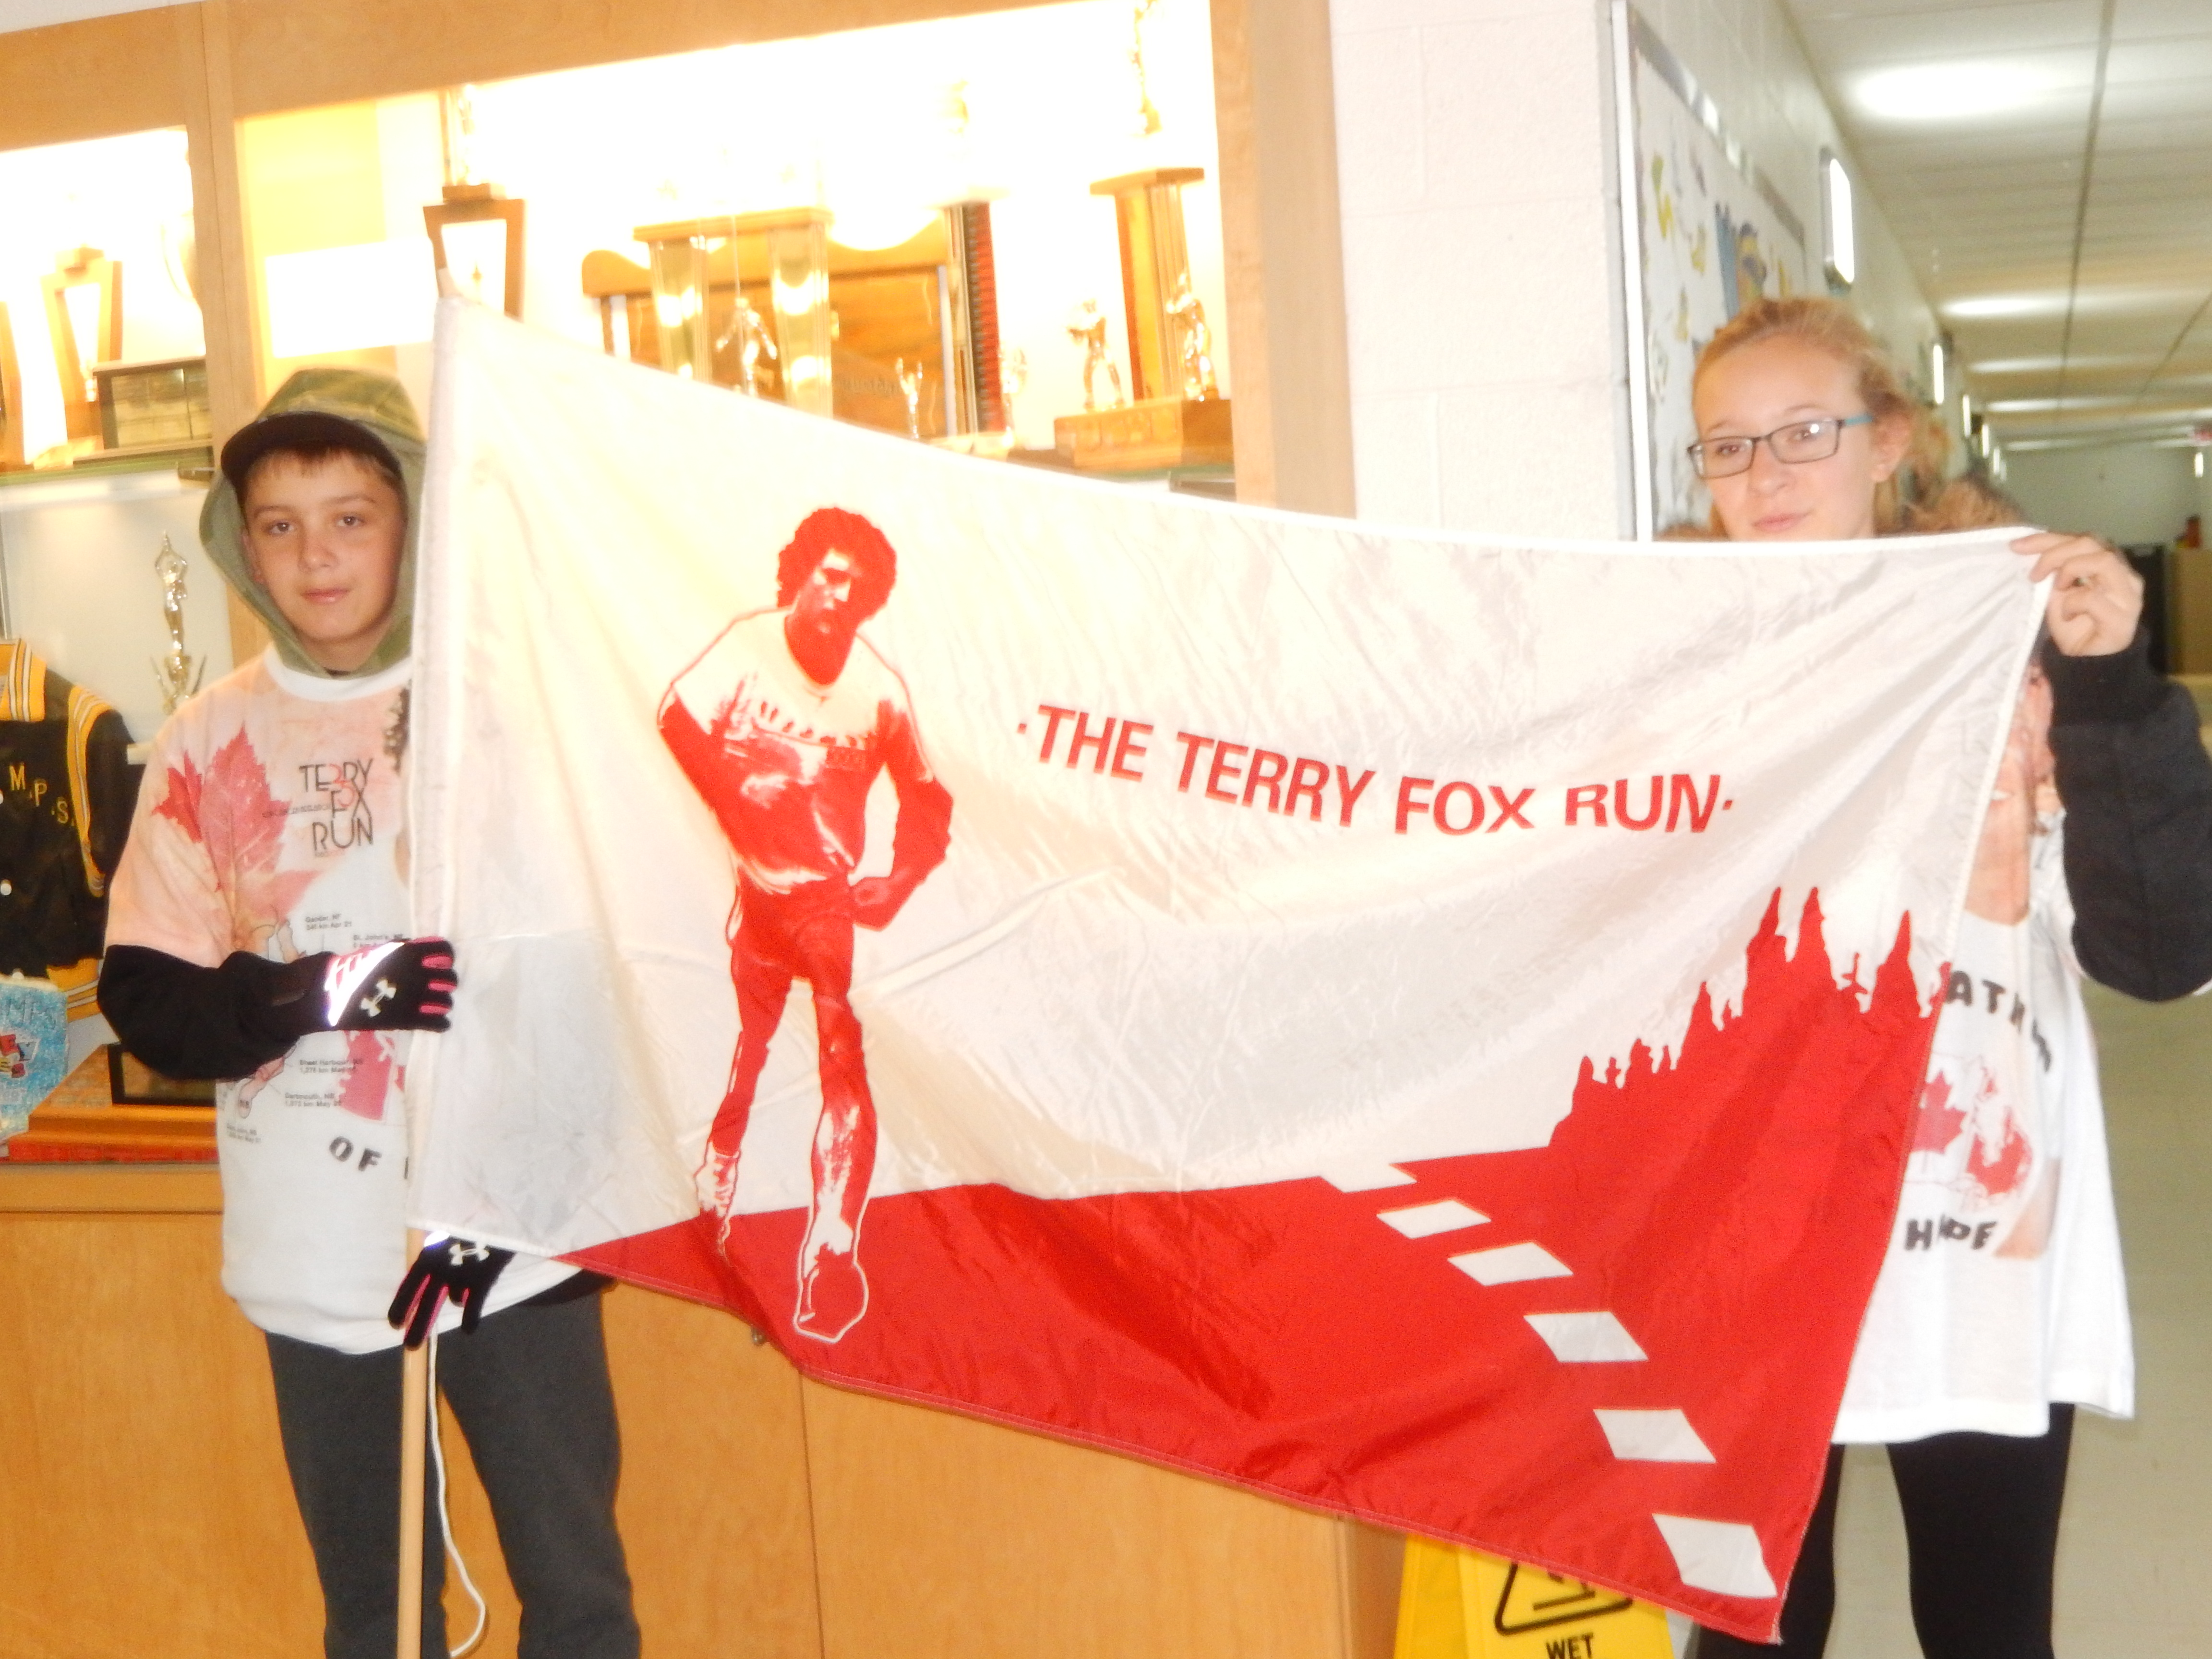 MPS Raises More Than $900 for Terry Fox Foundation